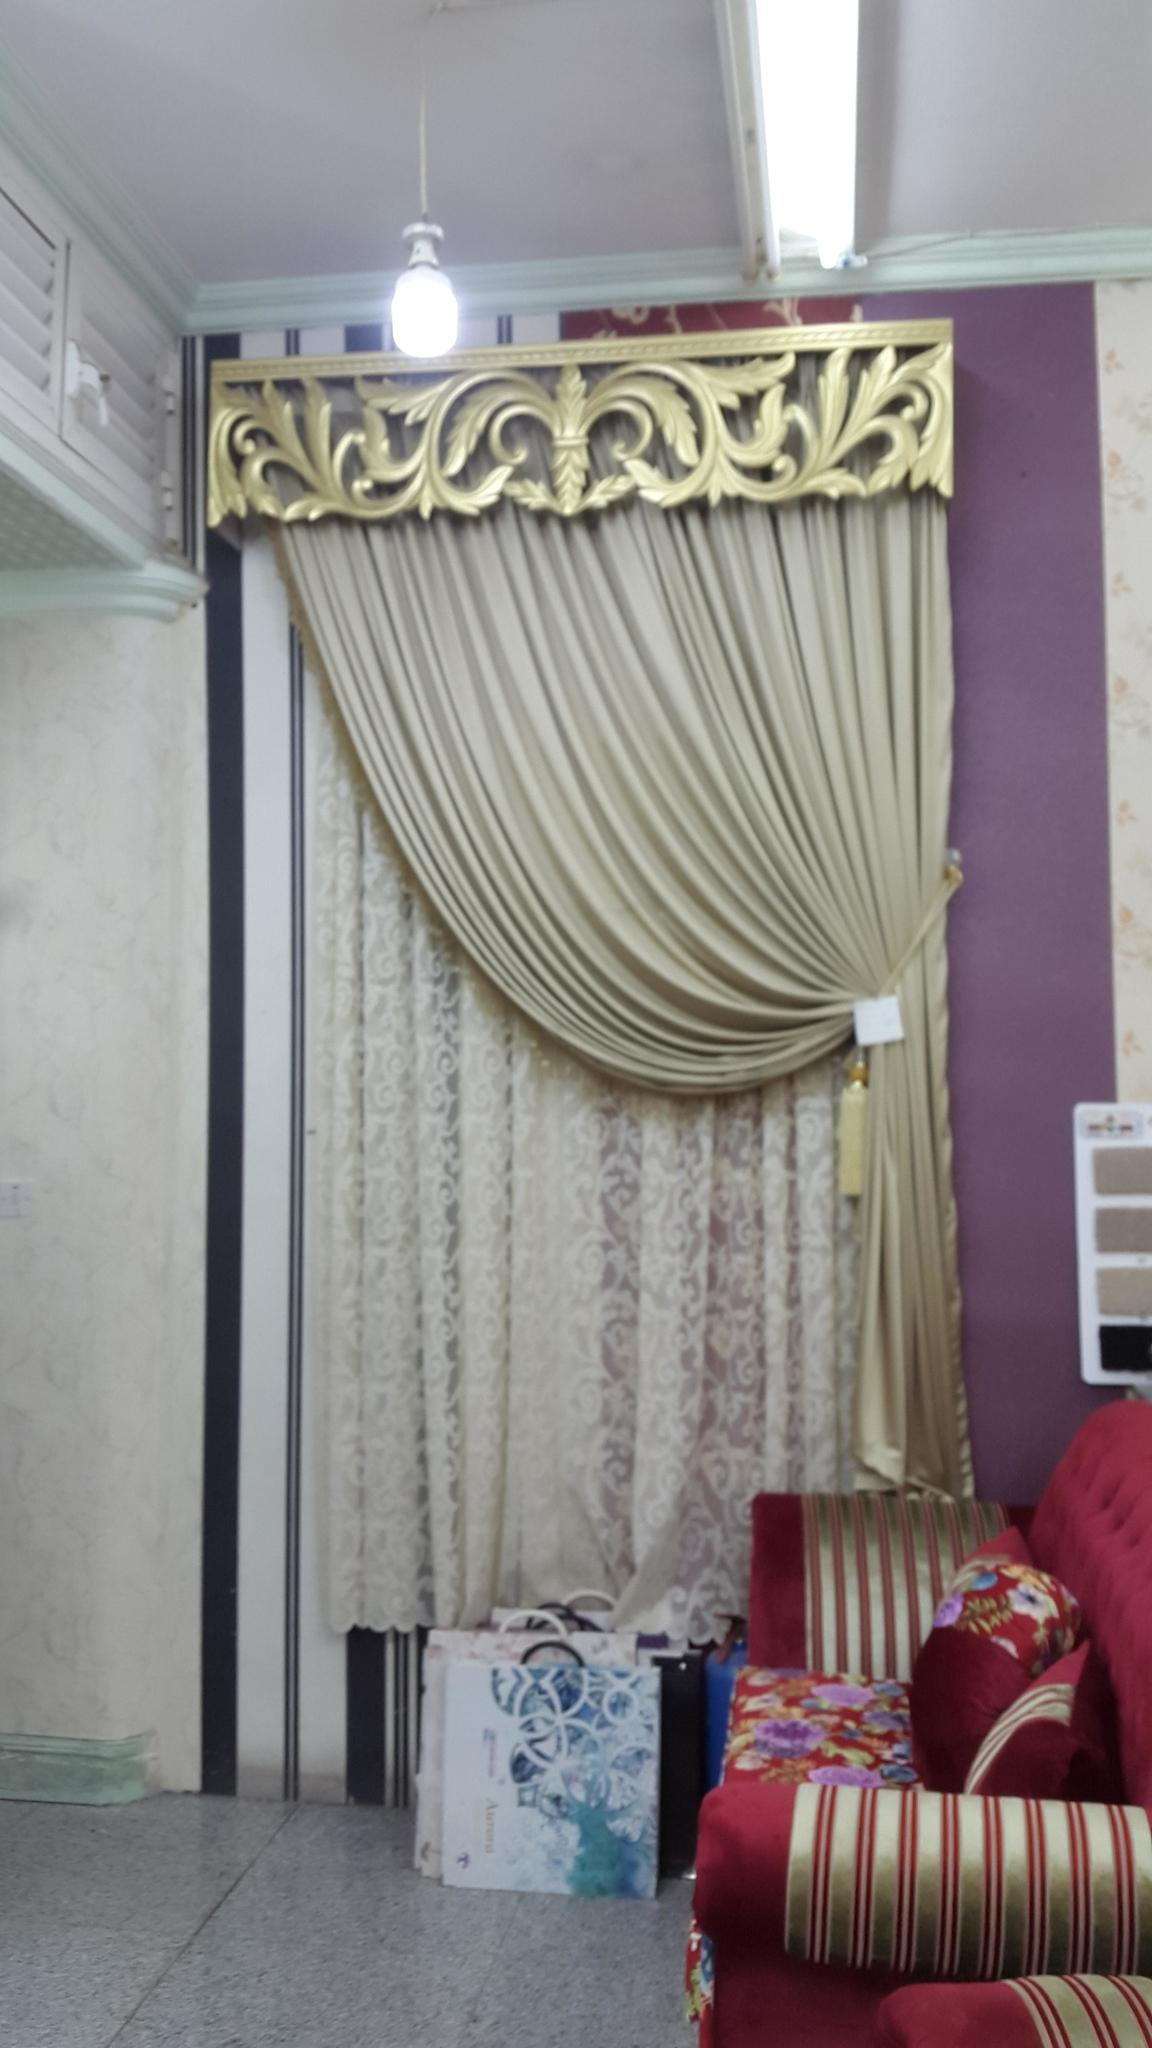 We sell curtain,wall paper,carpet,furniture. Pleas